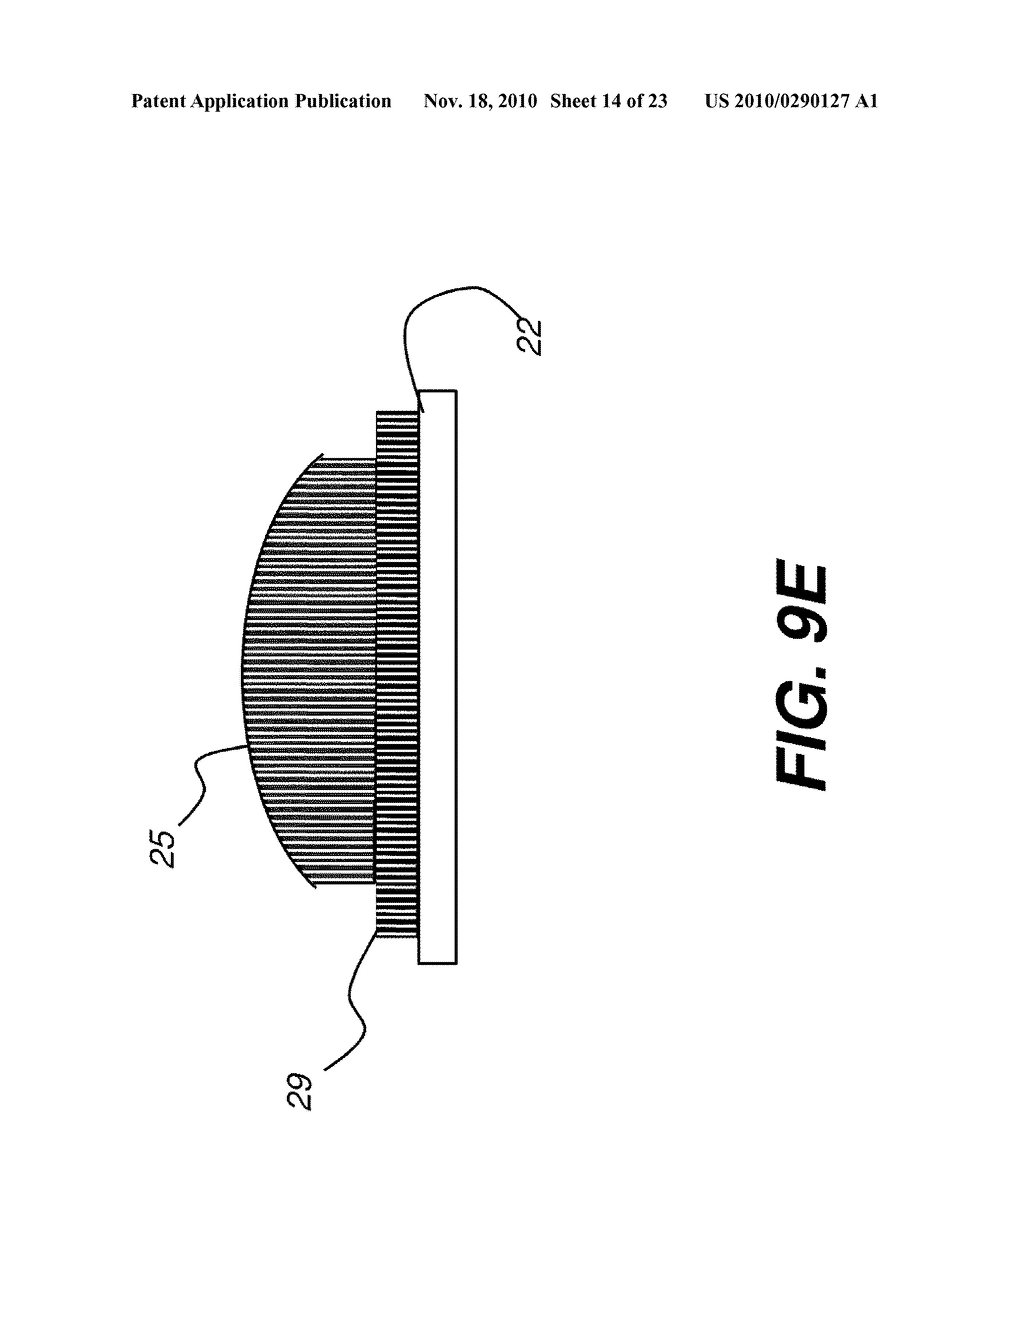 HEAD-MOUNTED OPTICAL APPARATUS USING AN OLED DISPLAY - diagram, schematic, and image 15